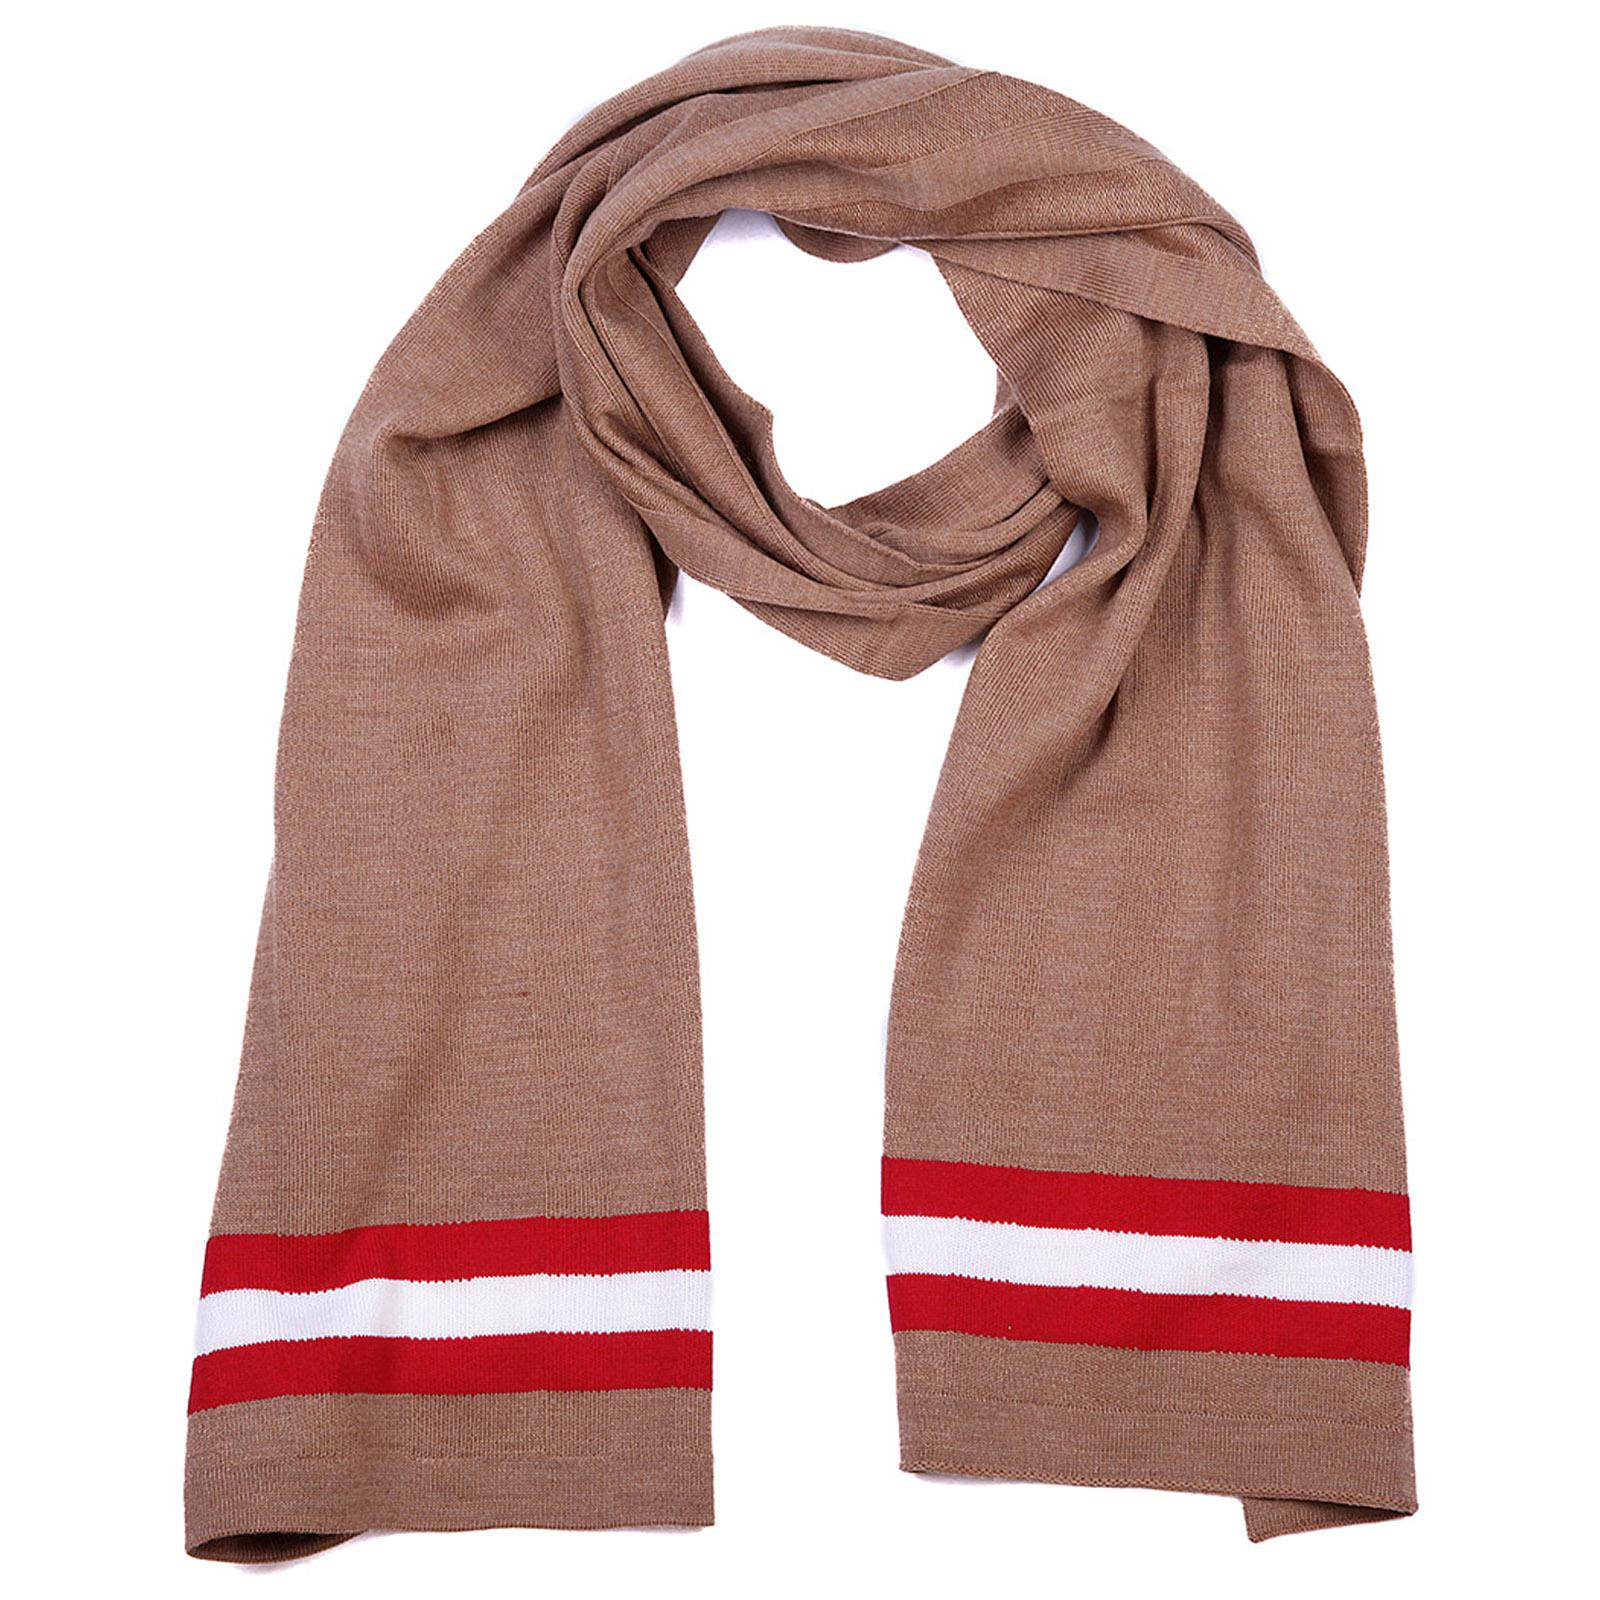 a23669a04ef Bally Wool Scarf Camel Knits in Red for Men - Lyst